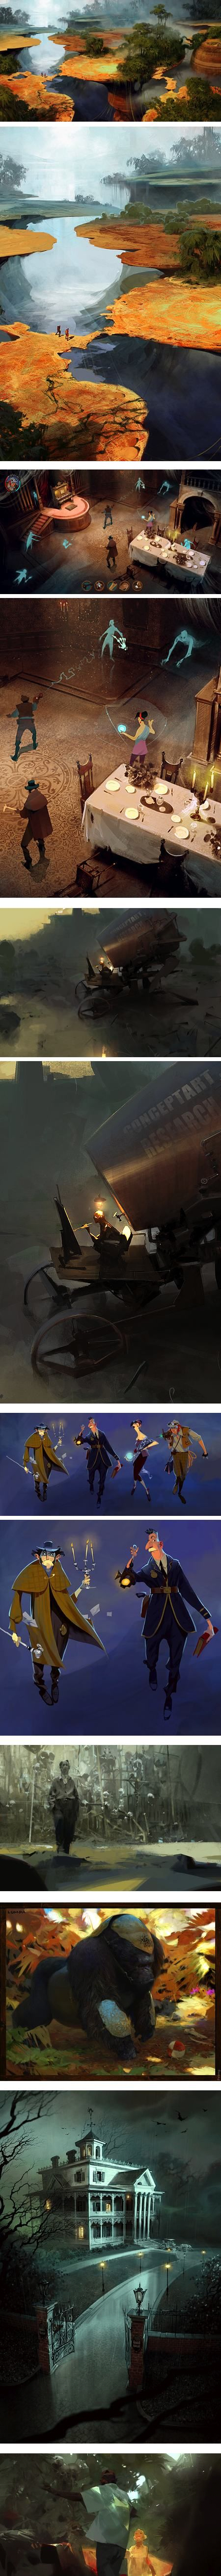 Sergey Kolesov, concept artist ★ Find more at http://www.pinterest.com/competing/